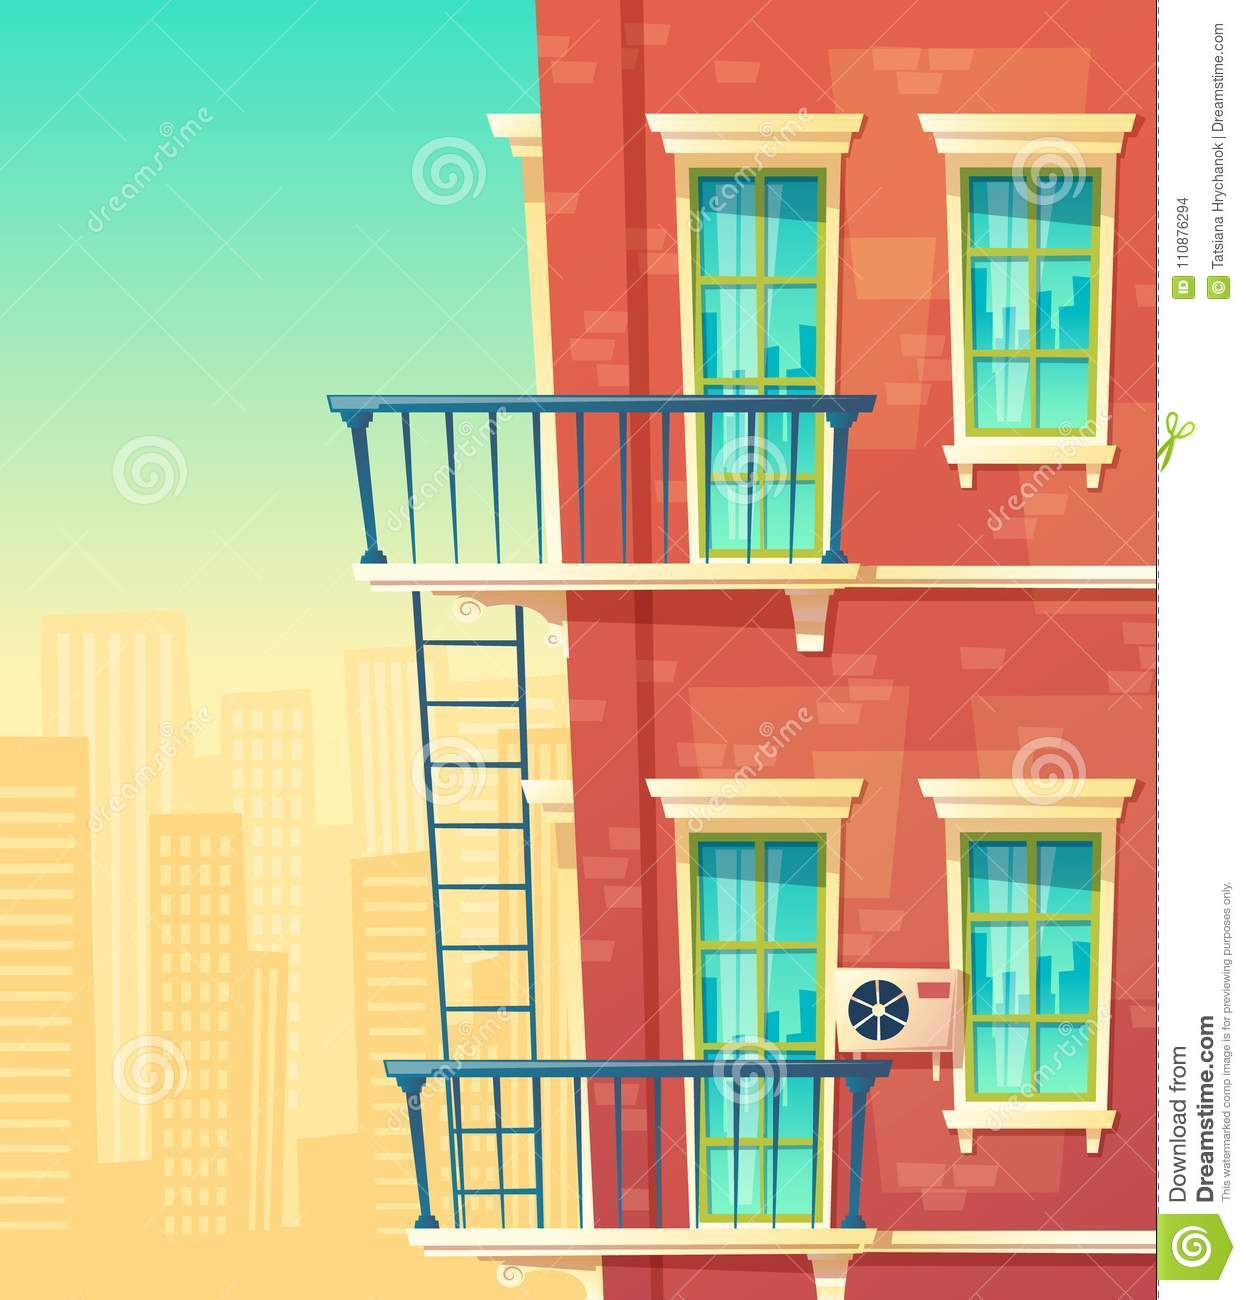 Vector illustration of house facade element